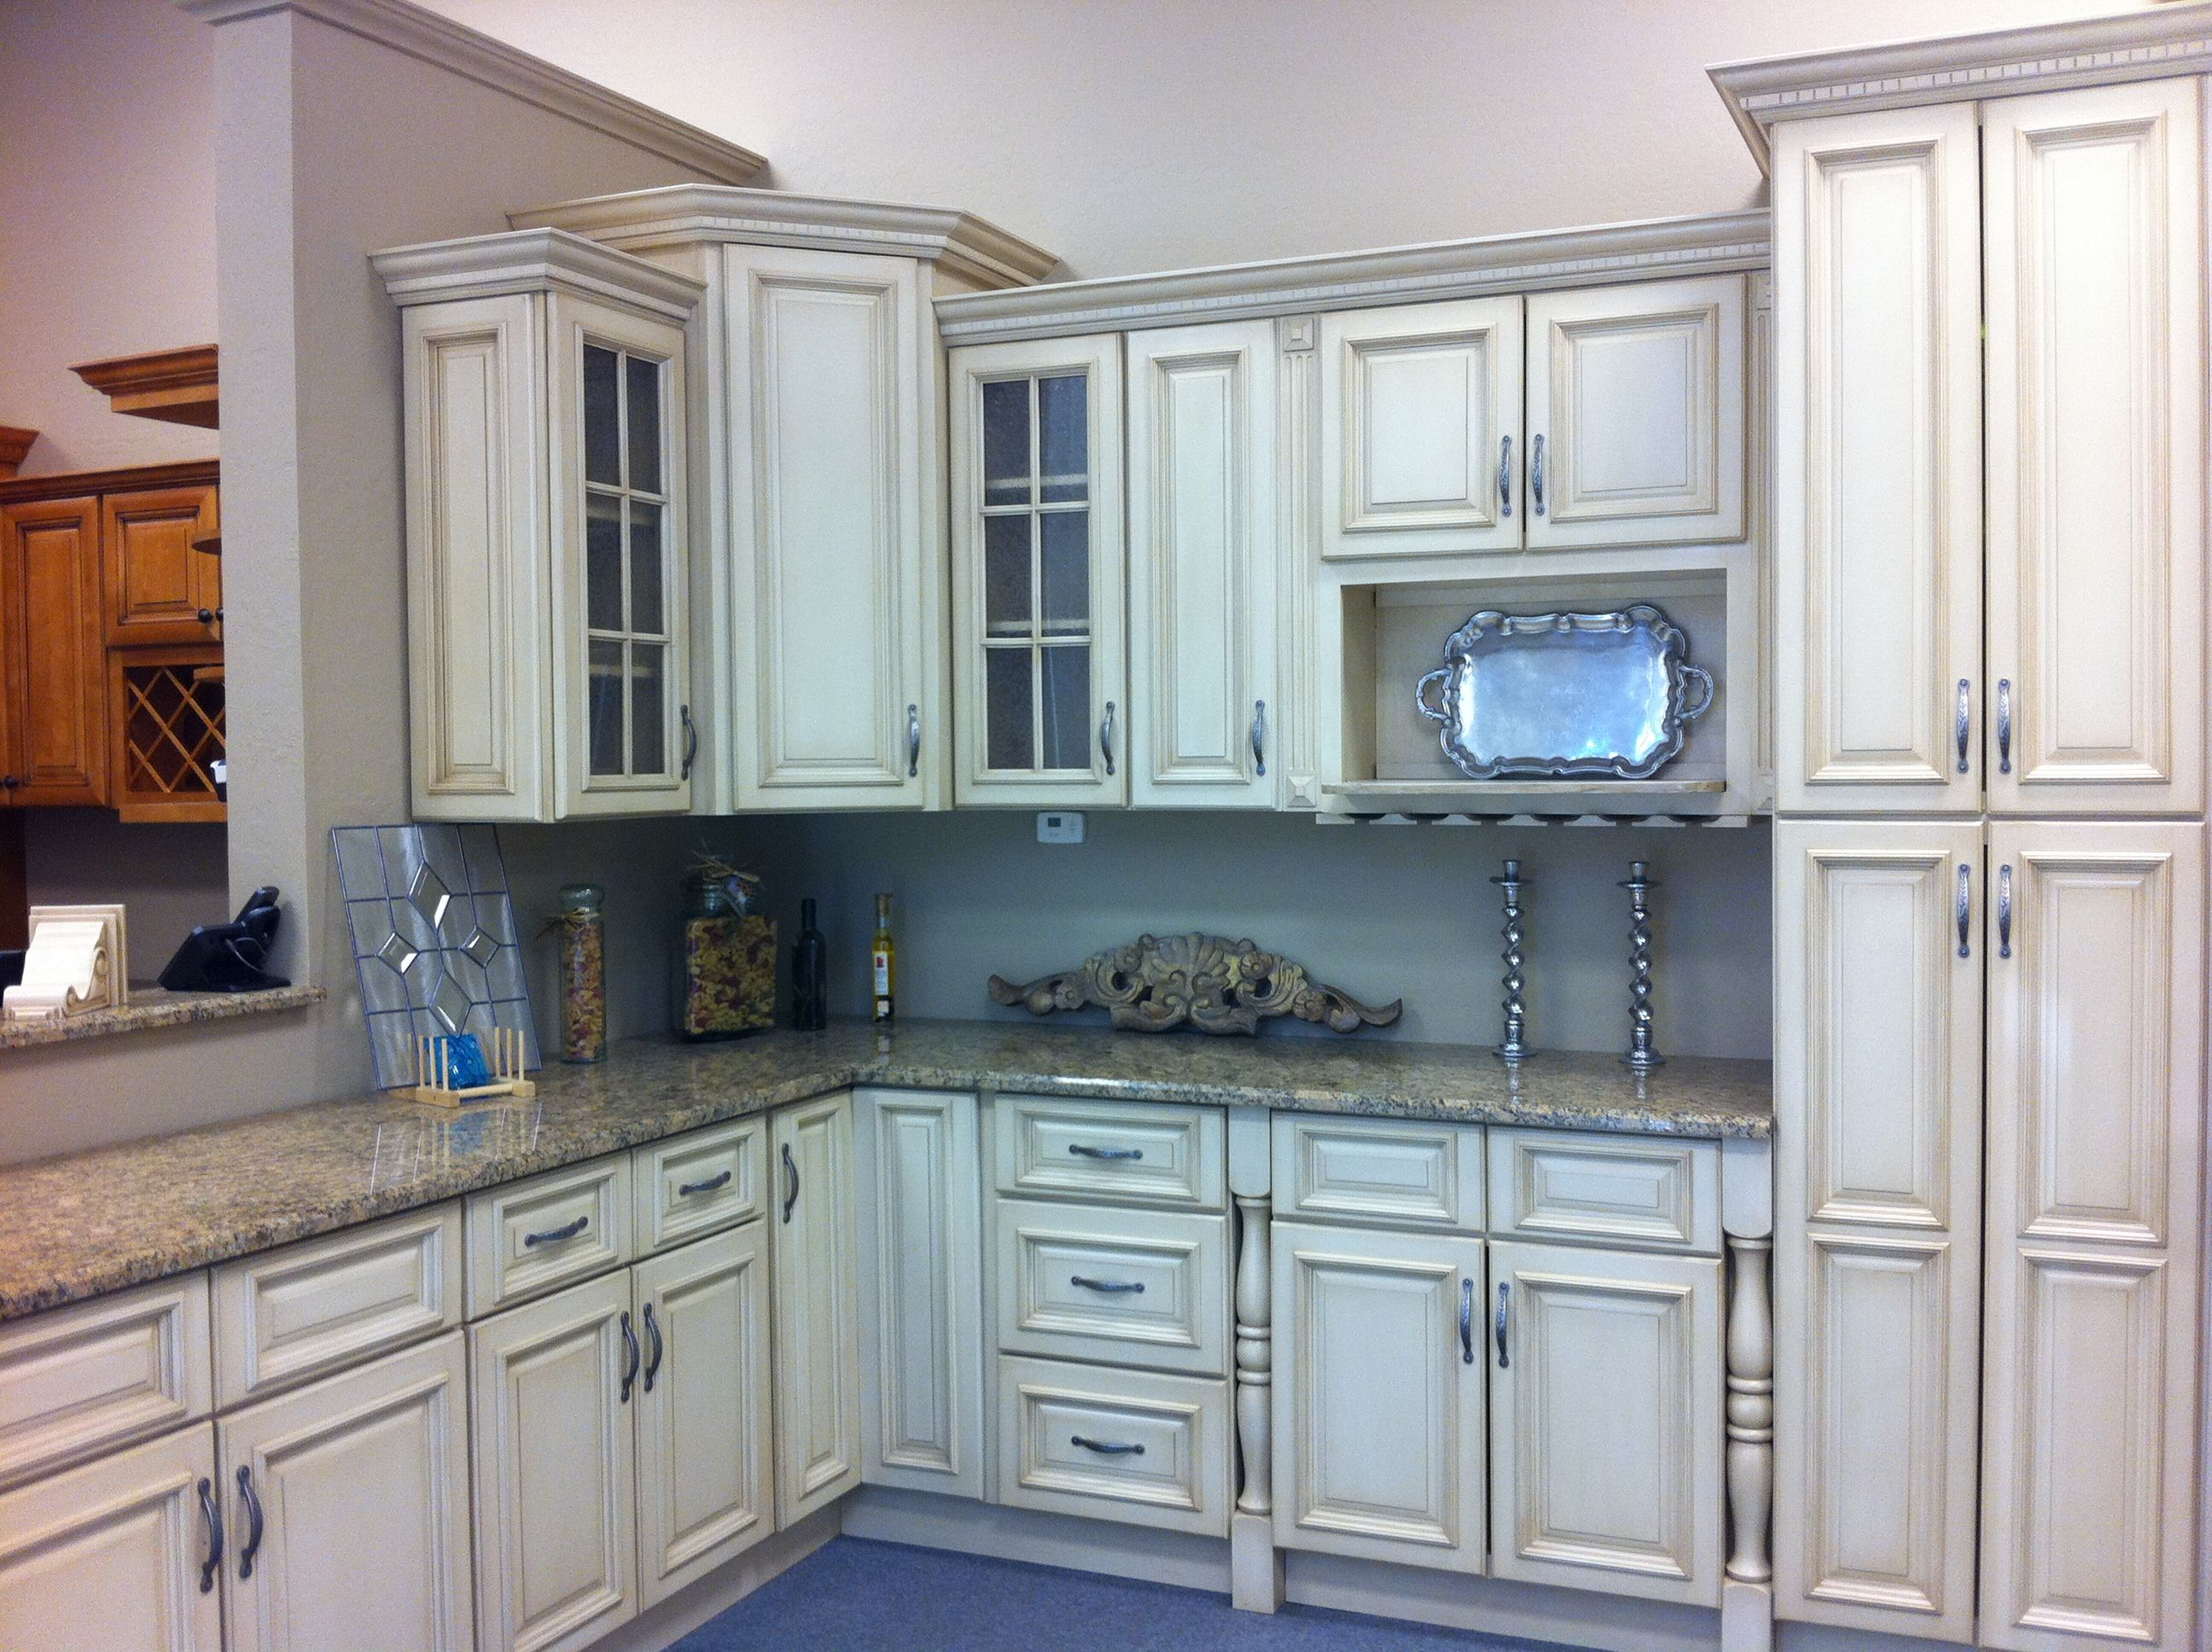 cream and grey kitchen grey kitchen cabinets Vintage Cream Cabinets For Kitchen Cabinetry Set Polished And Grey